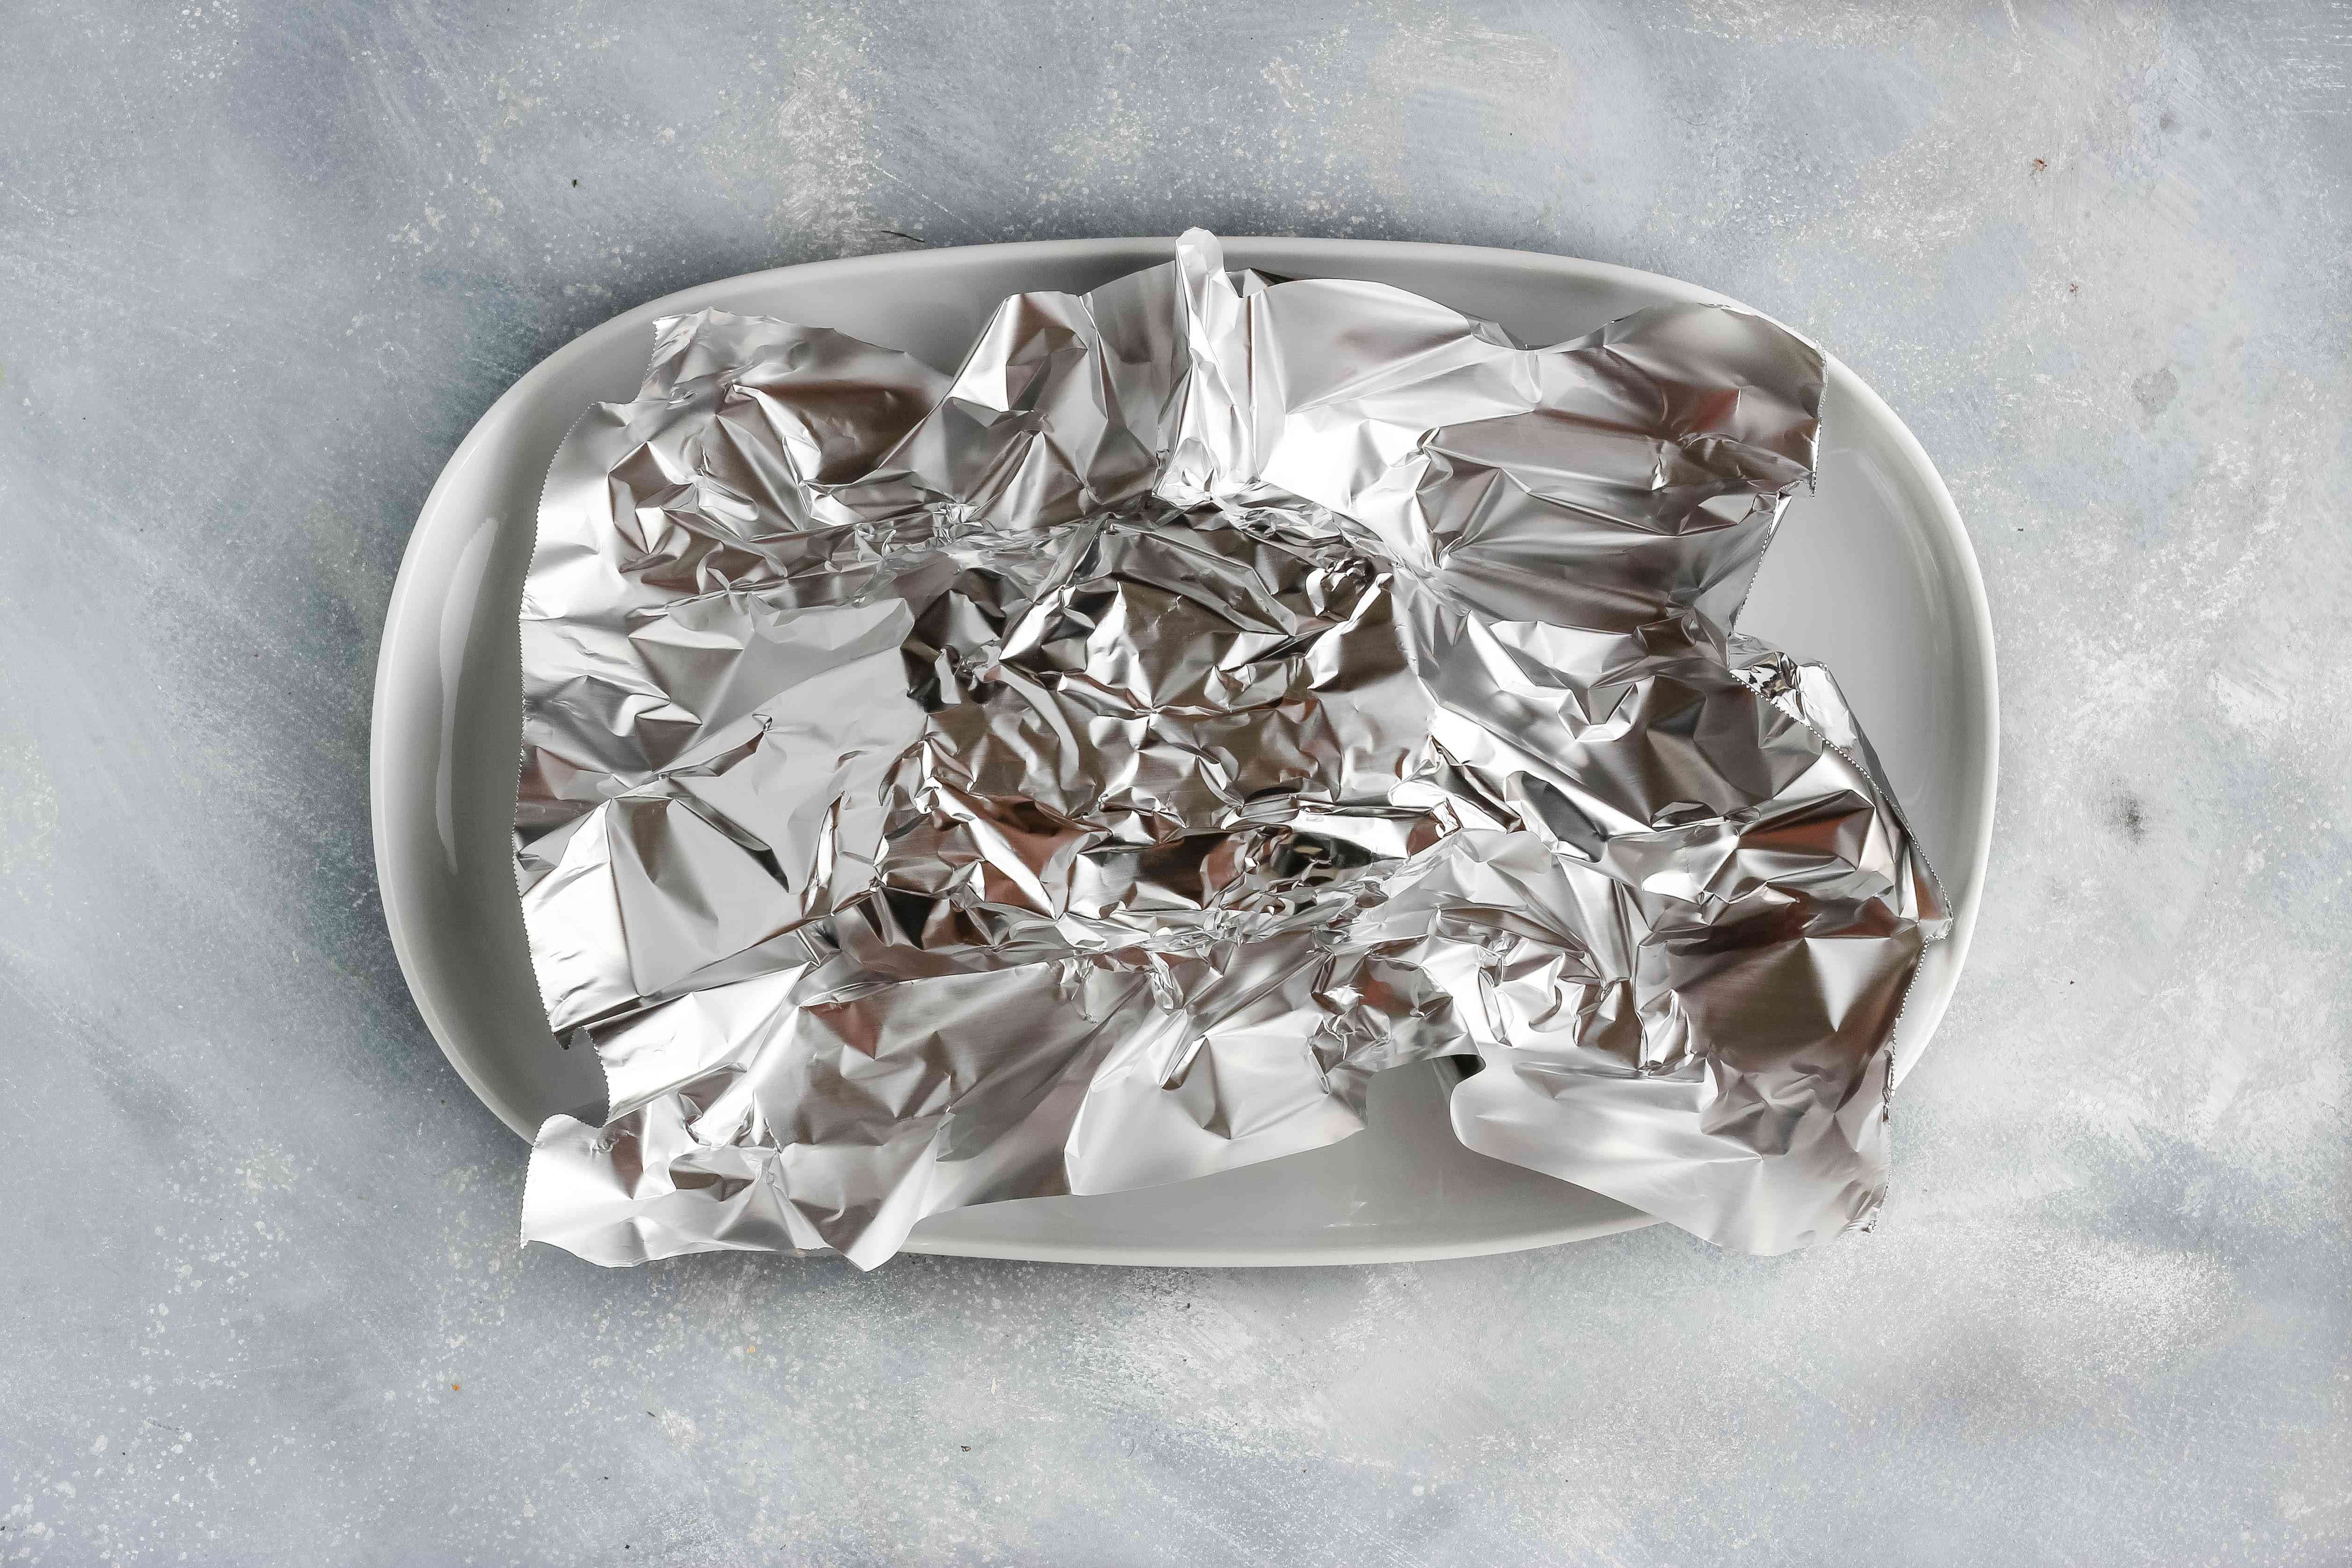 The meat is on a plate tented with foil